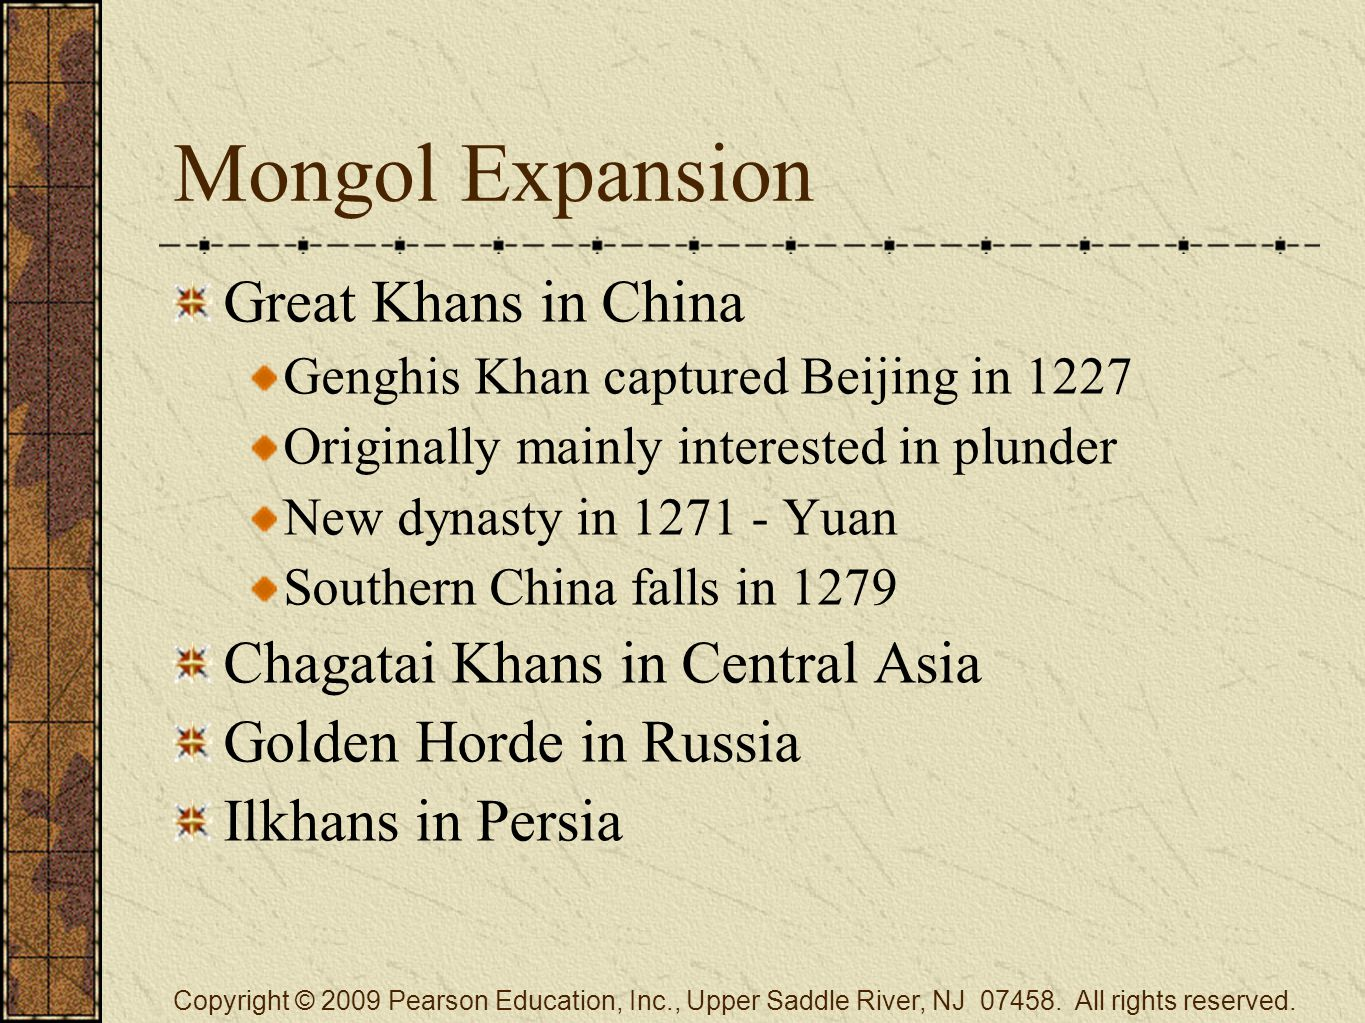 Mongol Expansion Great Khans in China Genghis Khan captured Beijing in 1227 Originally mainly interested in plunder New dynasty in 1271 - Yuan Southern China falls in 1279 Chagatai Khans in Central Asia Golden Horde in Russia Ilkhans in Persia Copyright © 2009 Pearson Education, Inc., Upper Saddle River, NJ 07458.